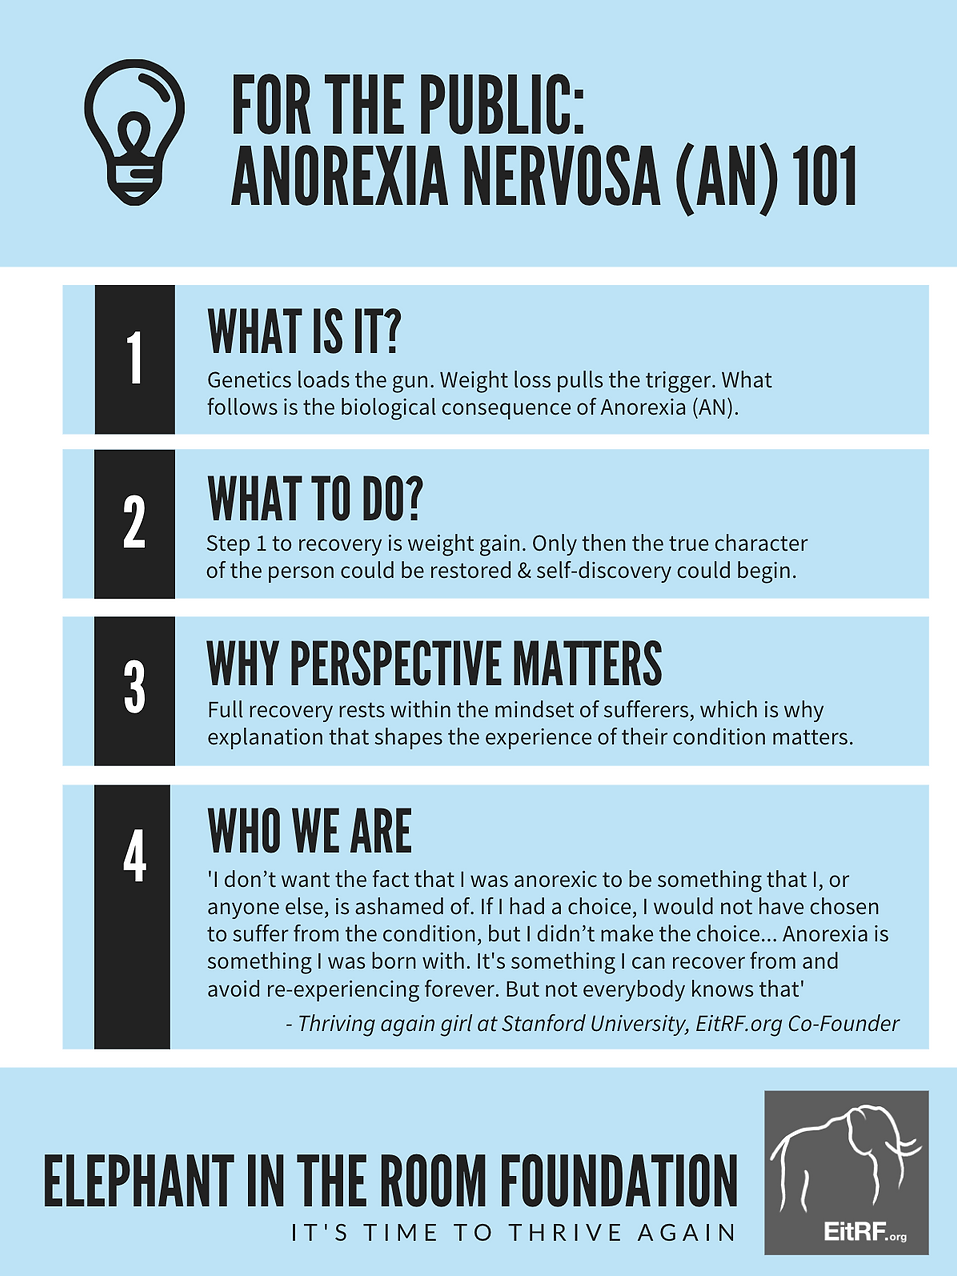 A guide to how anorexia works and how the EitRF wishes to help stop it.